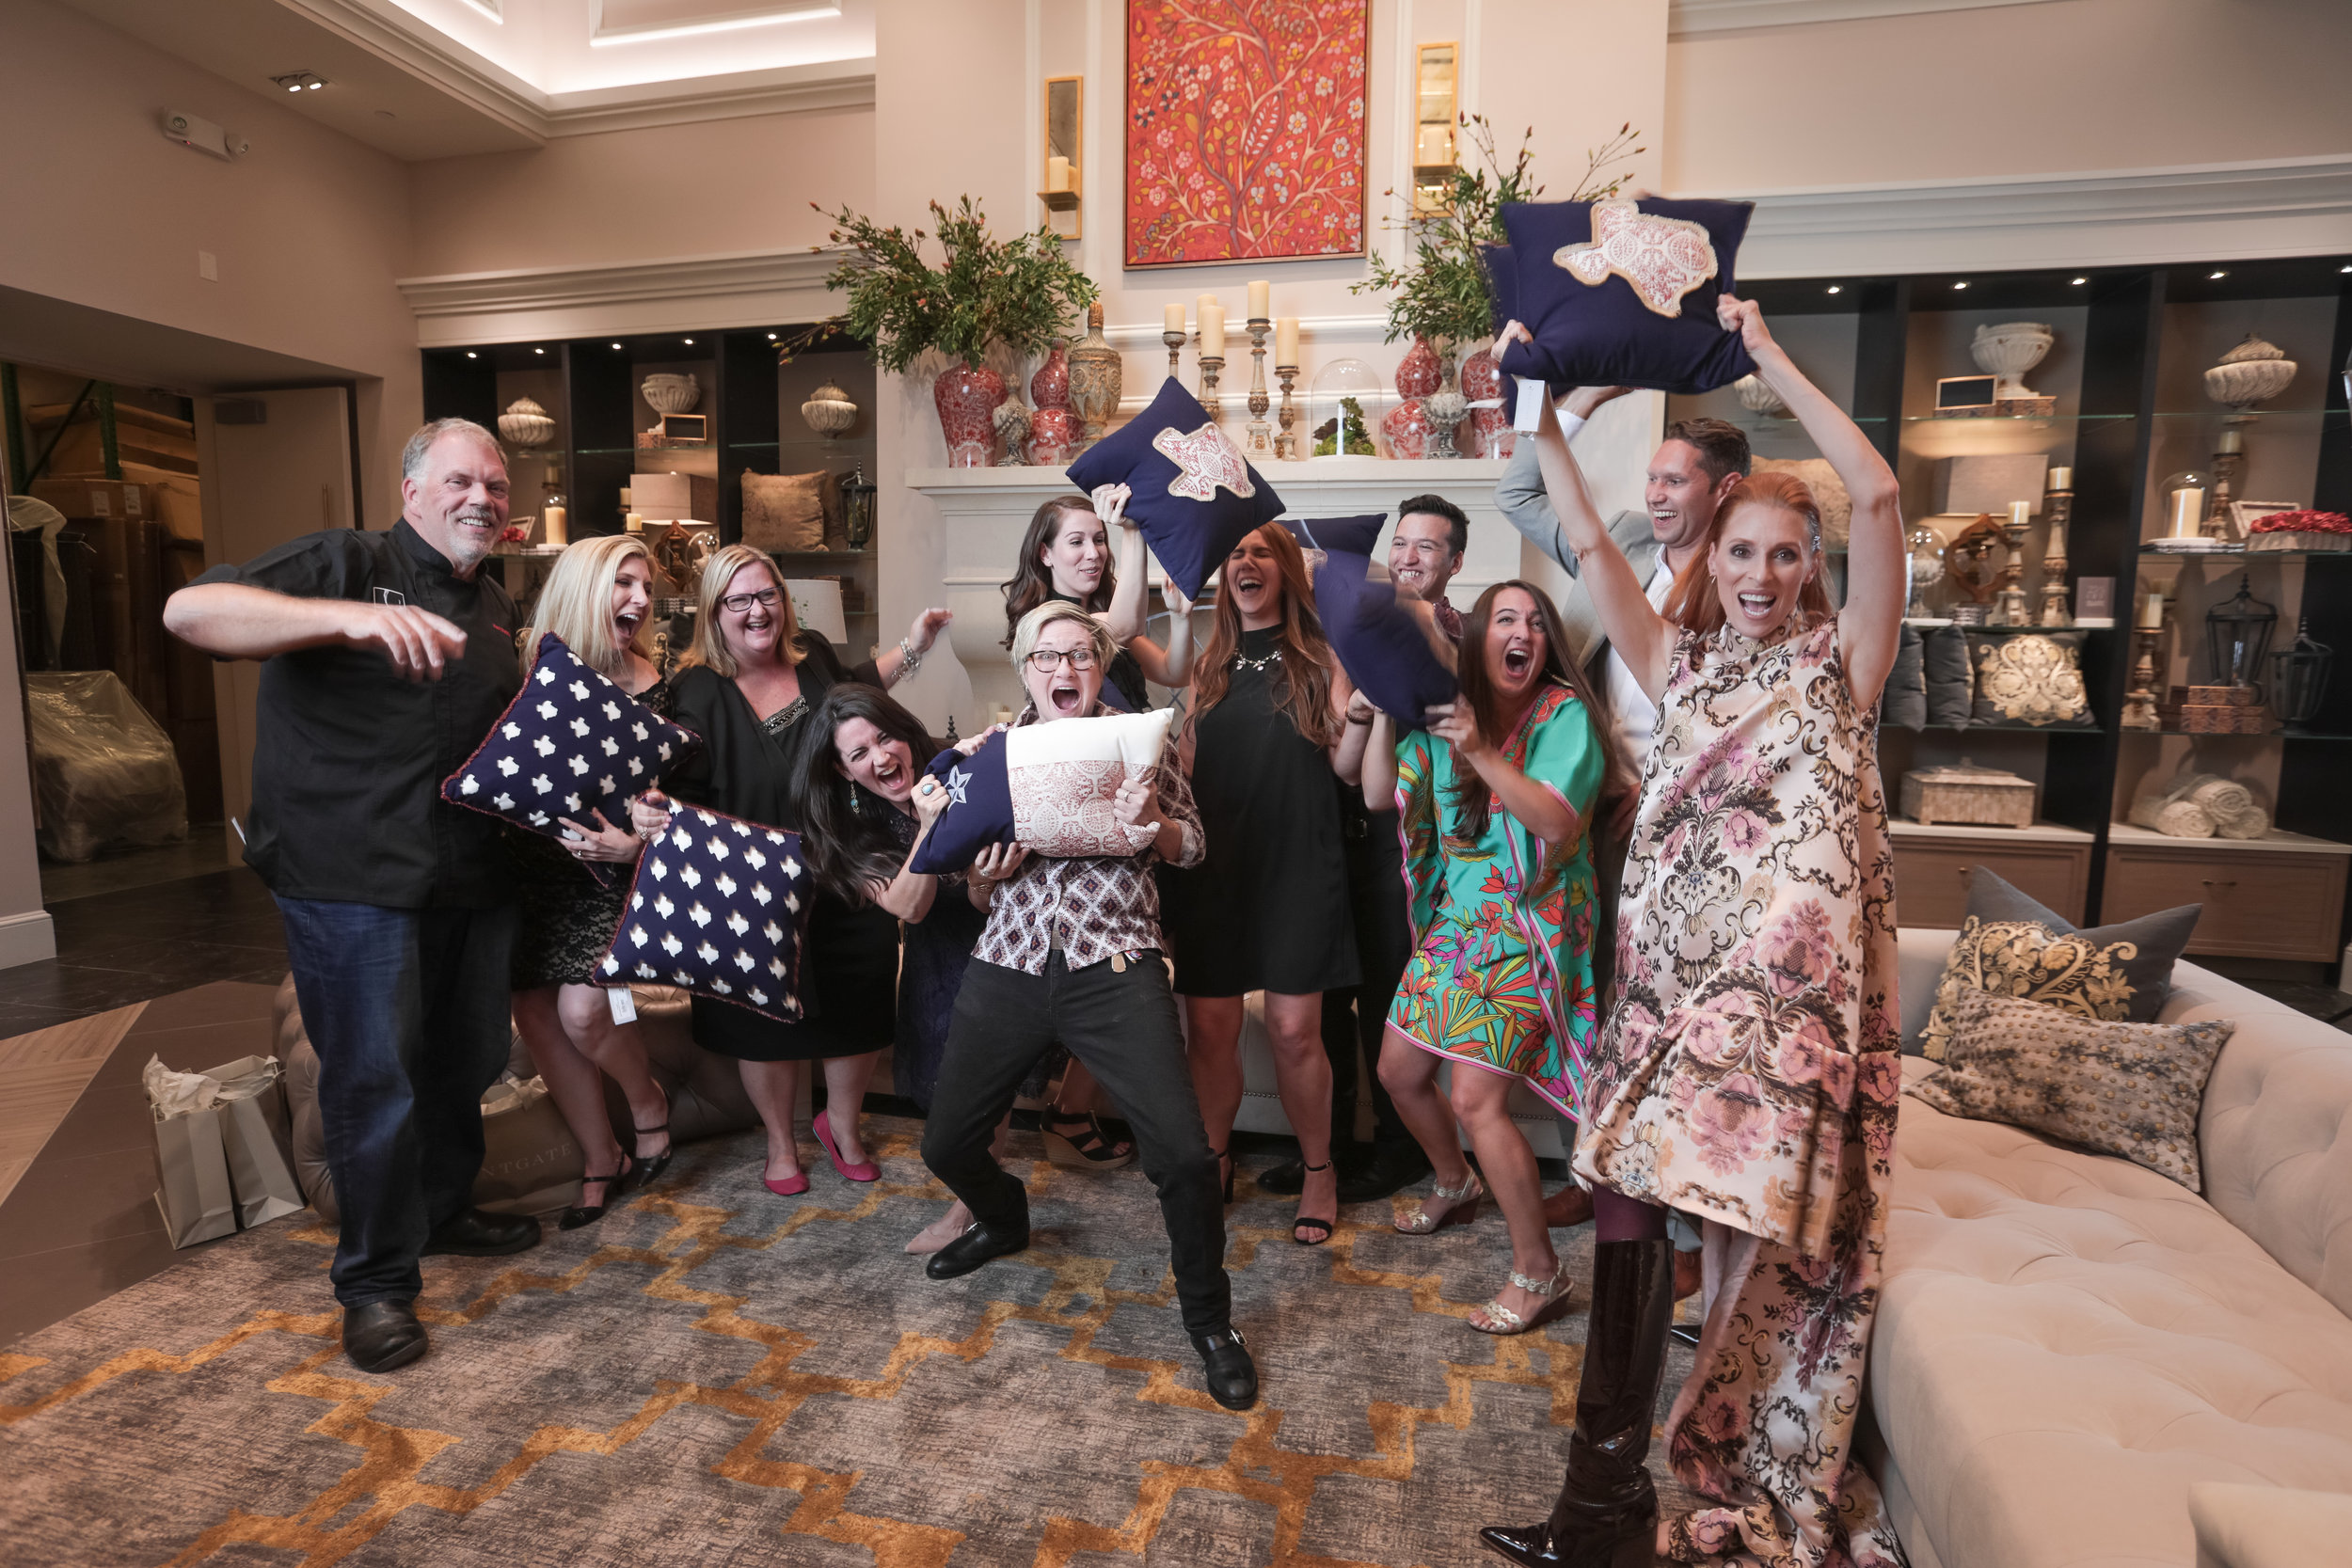 """This photo about sums up the night from the grand opening....it was a """"smashing success!"""" Pictured here is the Dala team with our client, Frontgate, as well as Kent Rathbun and Leann Berry, celebrating a wildly successful event!"""